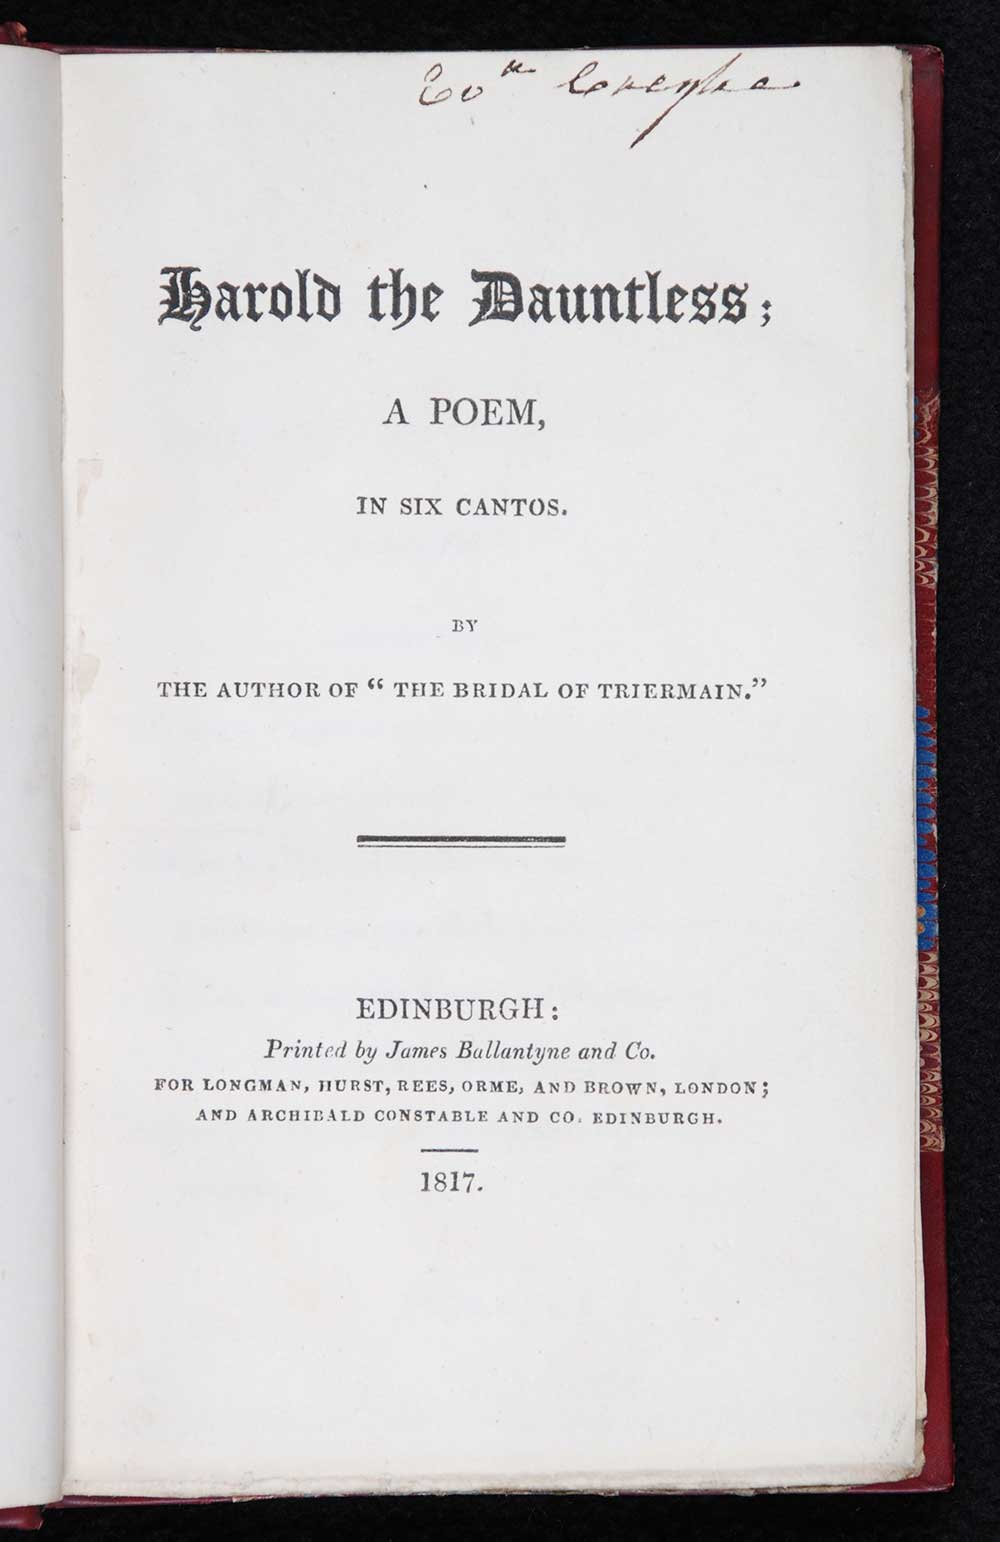 Sir Walter Scott. <em>Harold the dauntless: a poem in six cantos.</em> [1st edition]. Edinburgh: Printed by James Ballantyne and Co. for Longman, Hurst, Rees, Orme, and Brown, London; and Archibald Constable and Co., Edinburgh, 1817.